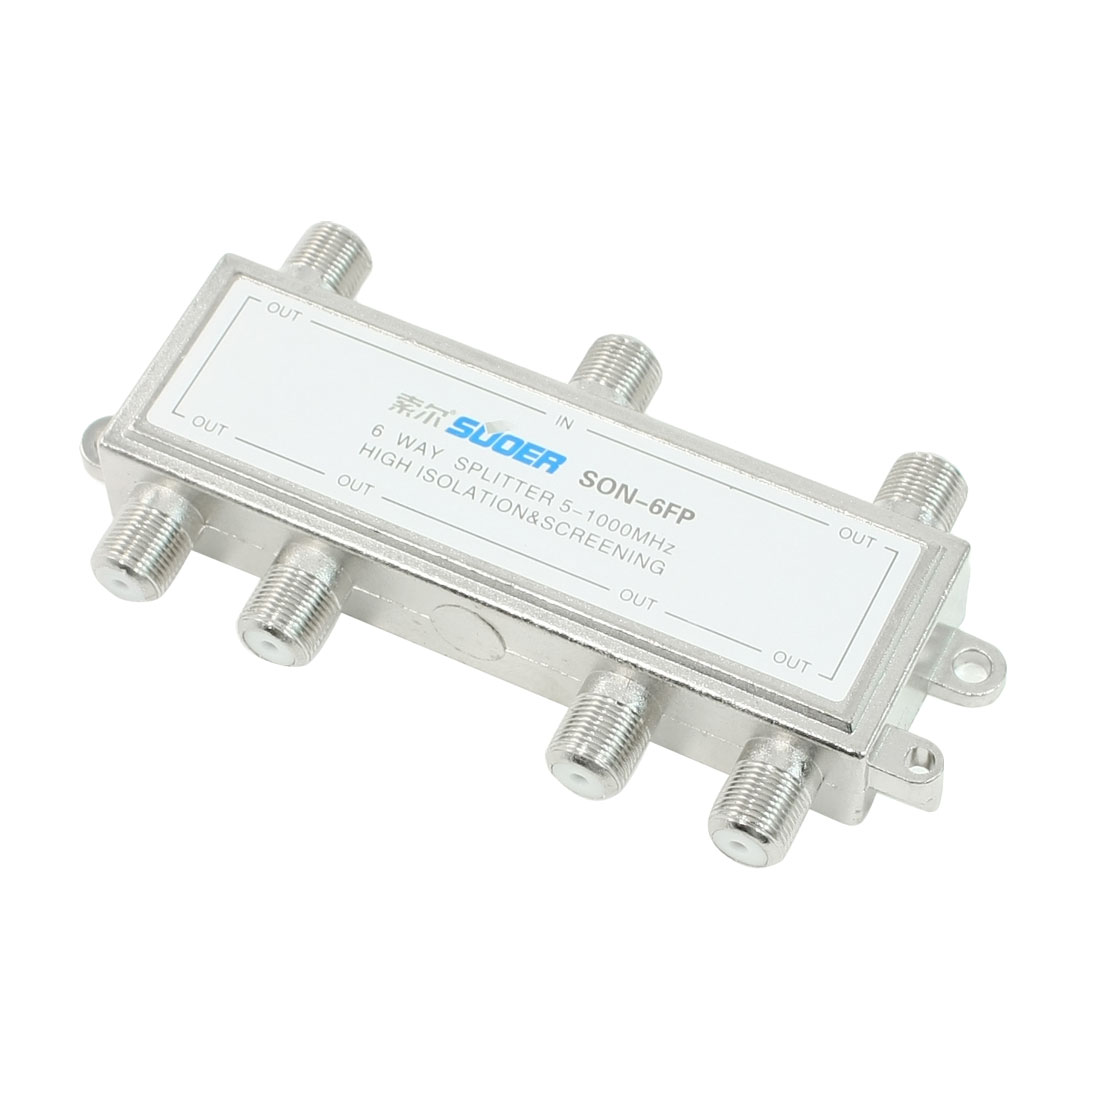 Silver Tone 6 Way Connector CATV Coaxial Cable Splitter 1 In 6 Out